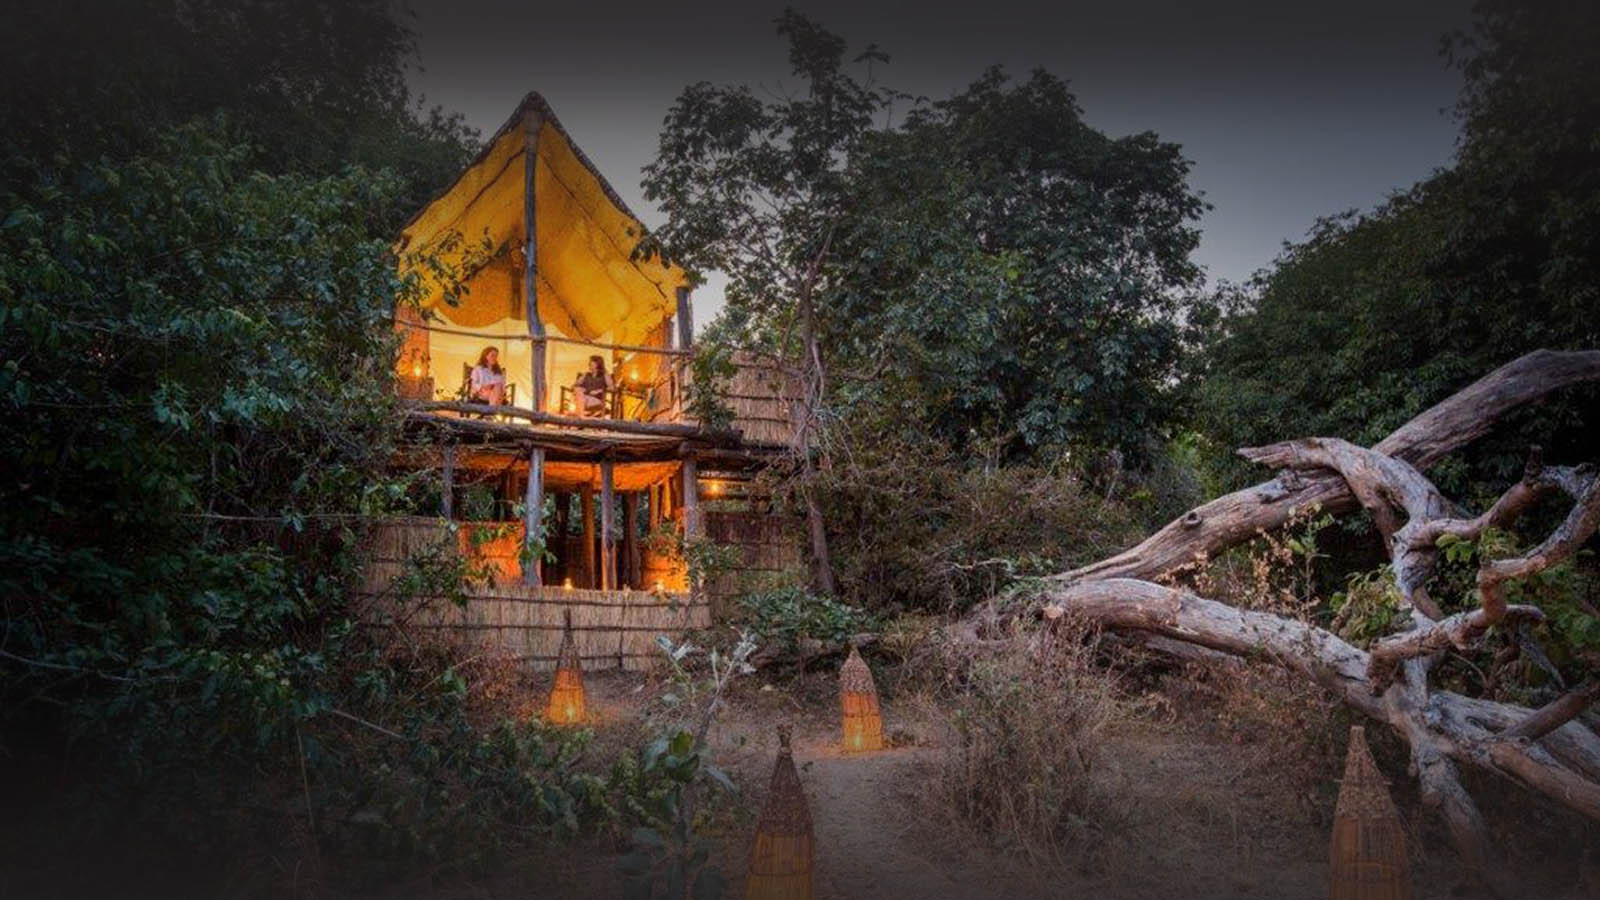 chikoko trails crocodile-camp-zambia-in-style-tours-safari-packages-lodges-travel-south-luangwa-national-park-remote-africa